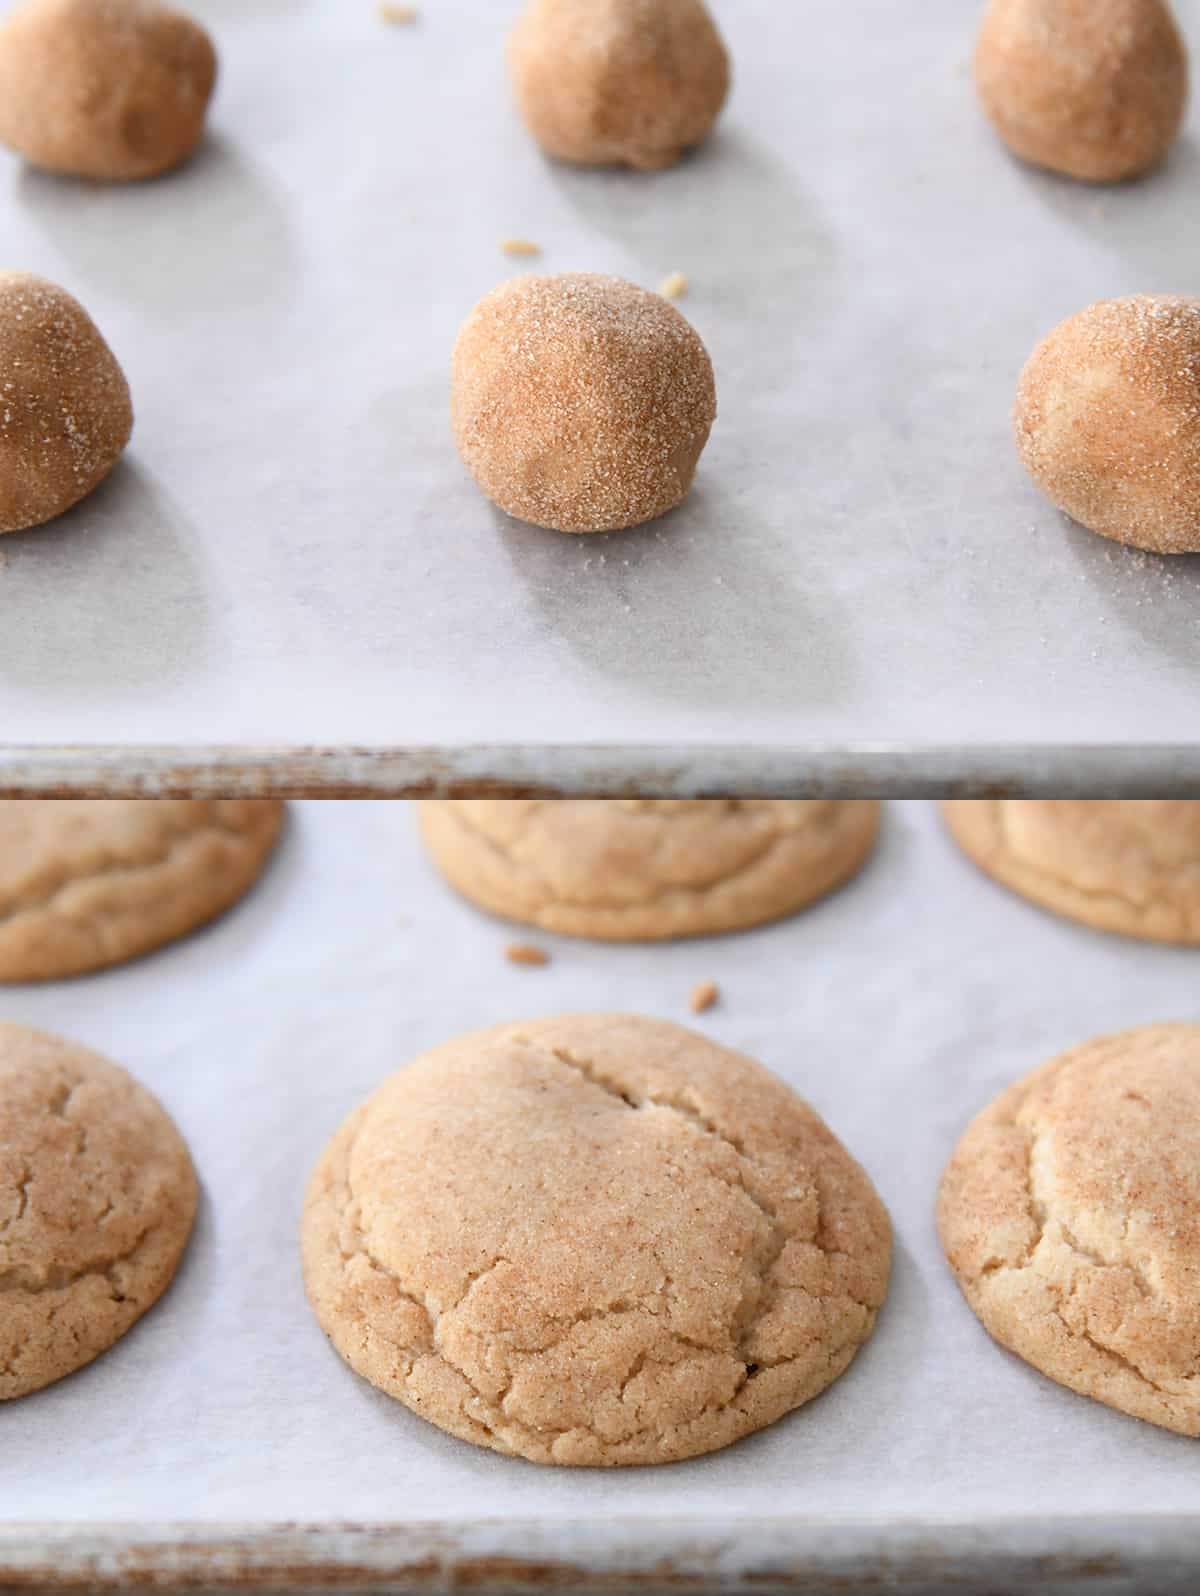 snickerdoodle ball rolled in cinnamon and sugar and baked tray of snickerdoodles